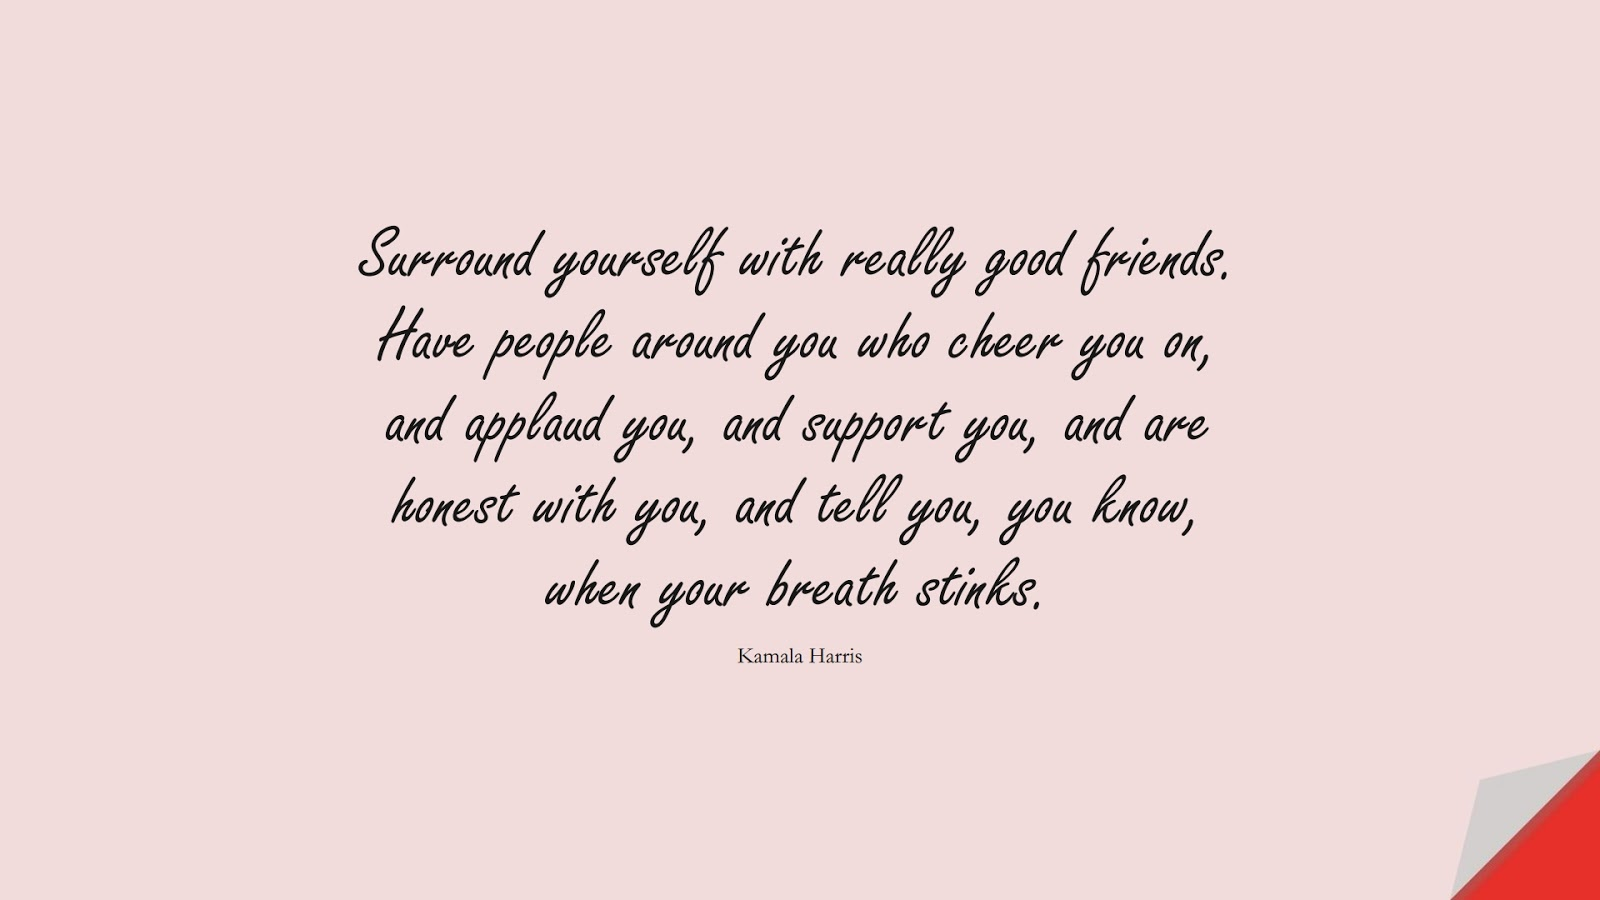 Surround yourself with really good friends. Have people around you who cheer you on, and applaud you, and support you, and are honest with you, and tell you, you know, when your breath stinks. (Kamala Harris);  #RelationshipQuotes